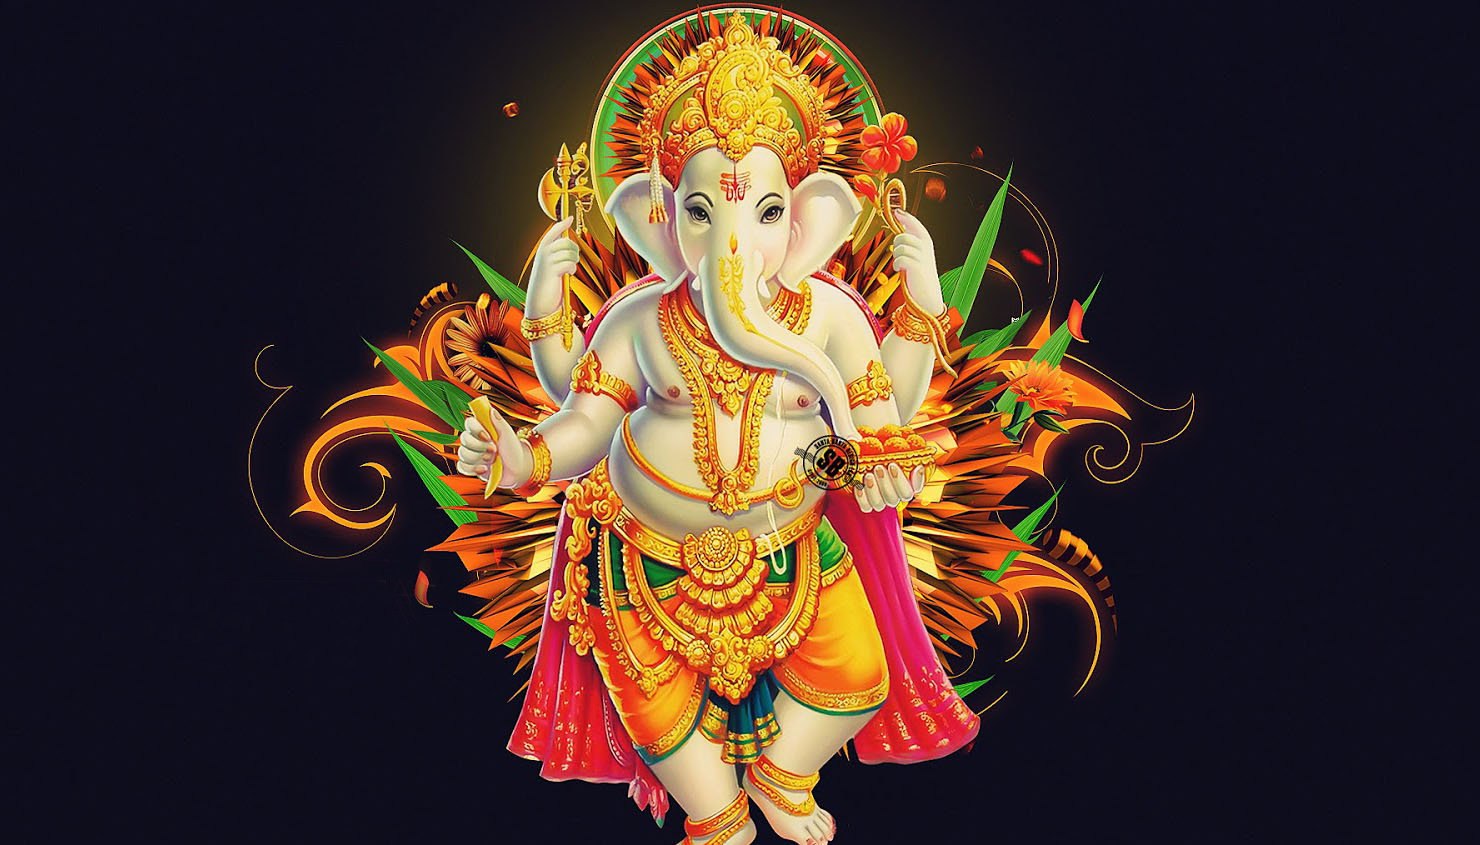 Beautiful Pictures Of Lord Ganesha Free Download